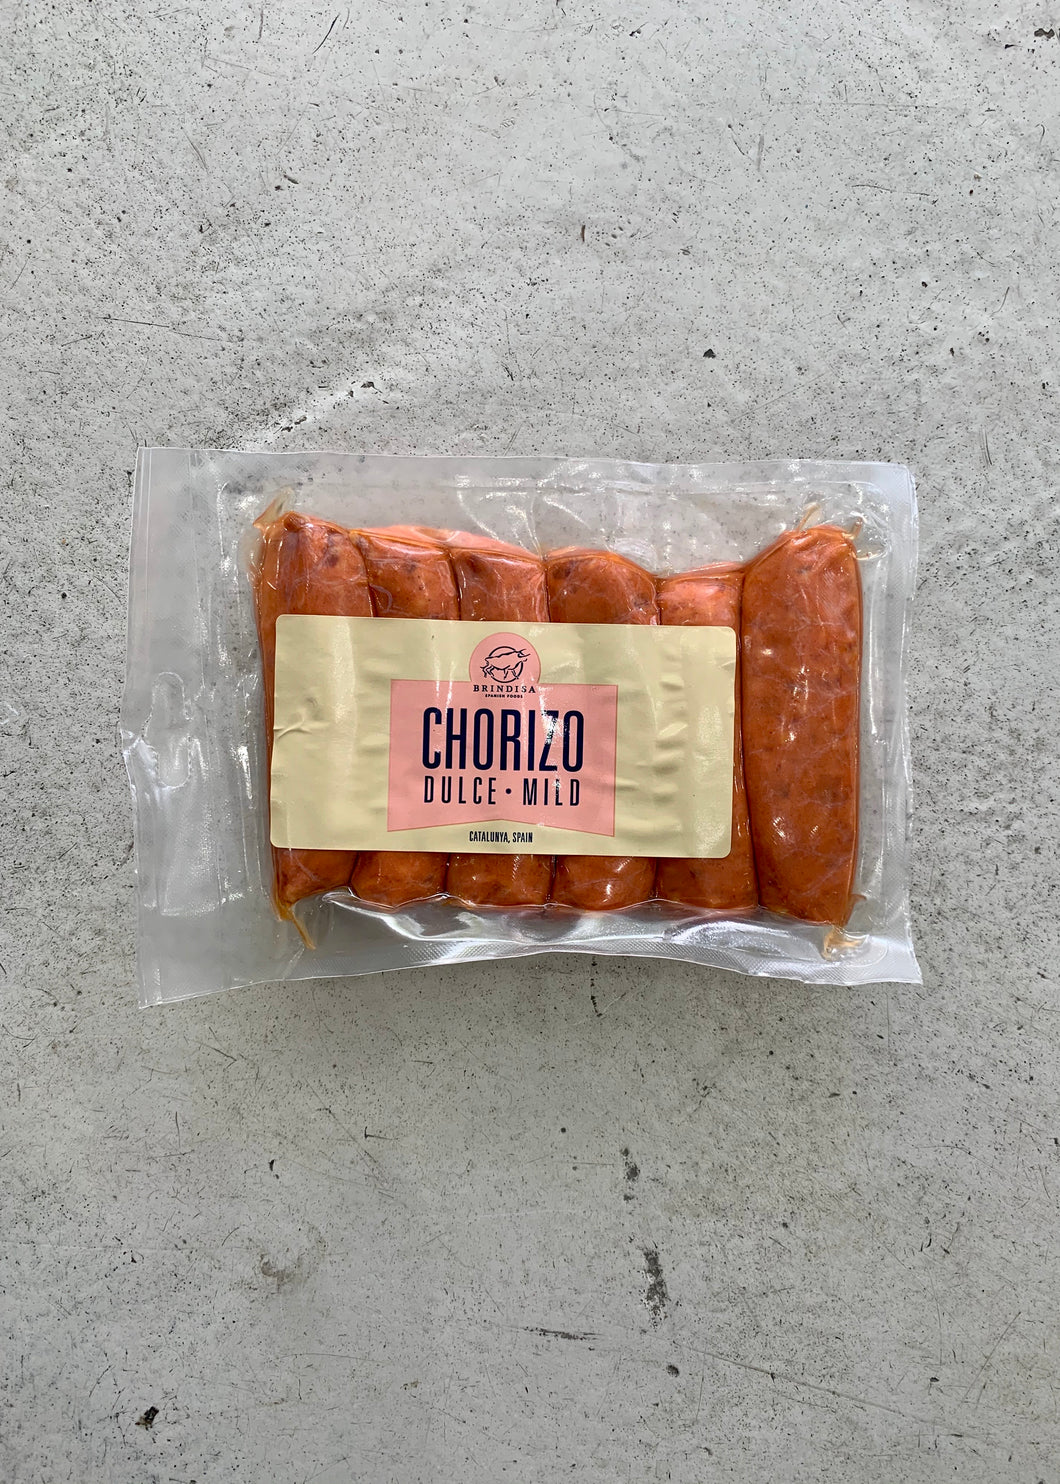 Brindisa Cooking Chorizo - Mild (6 Pieces)